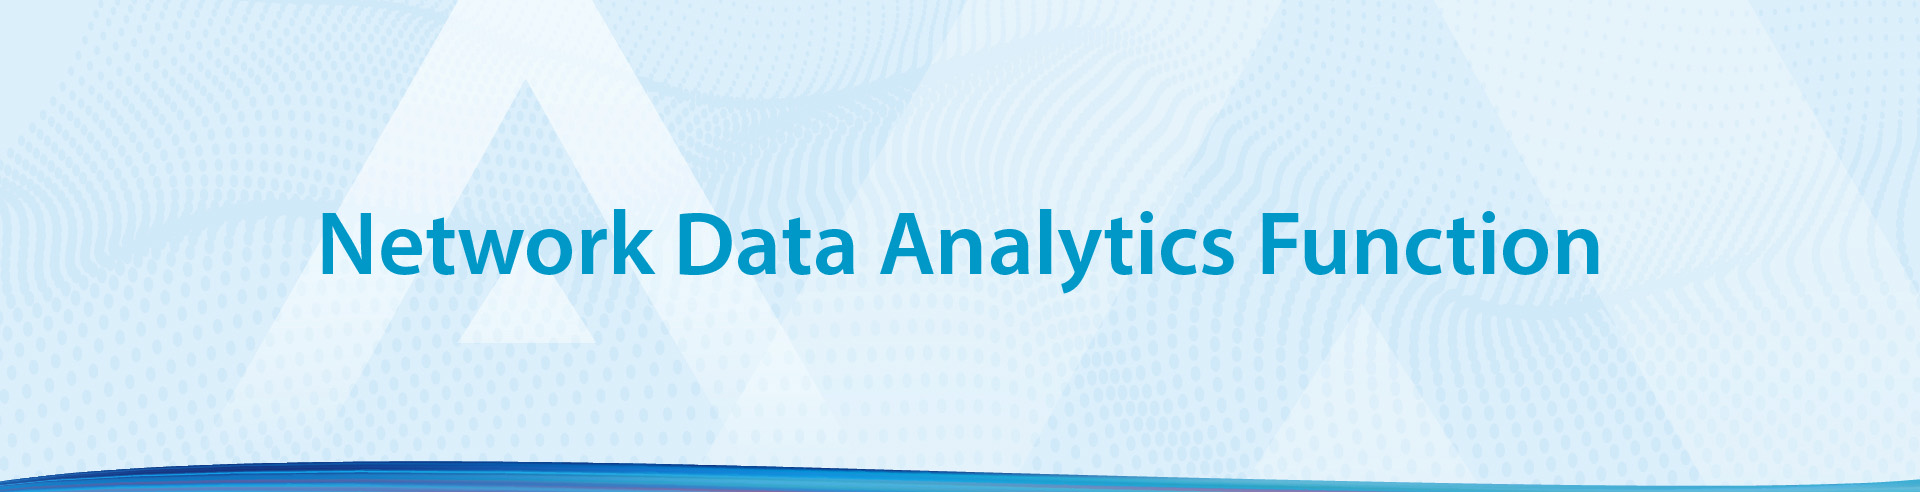 Network Data Analytics Function